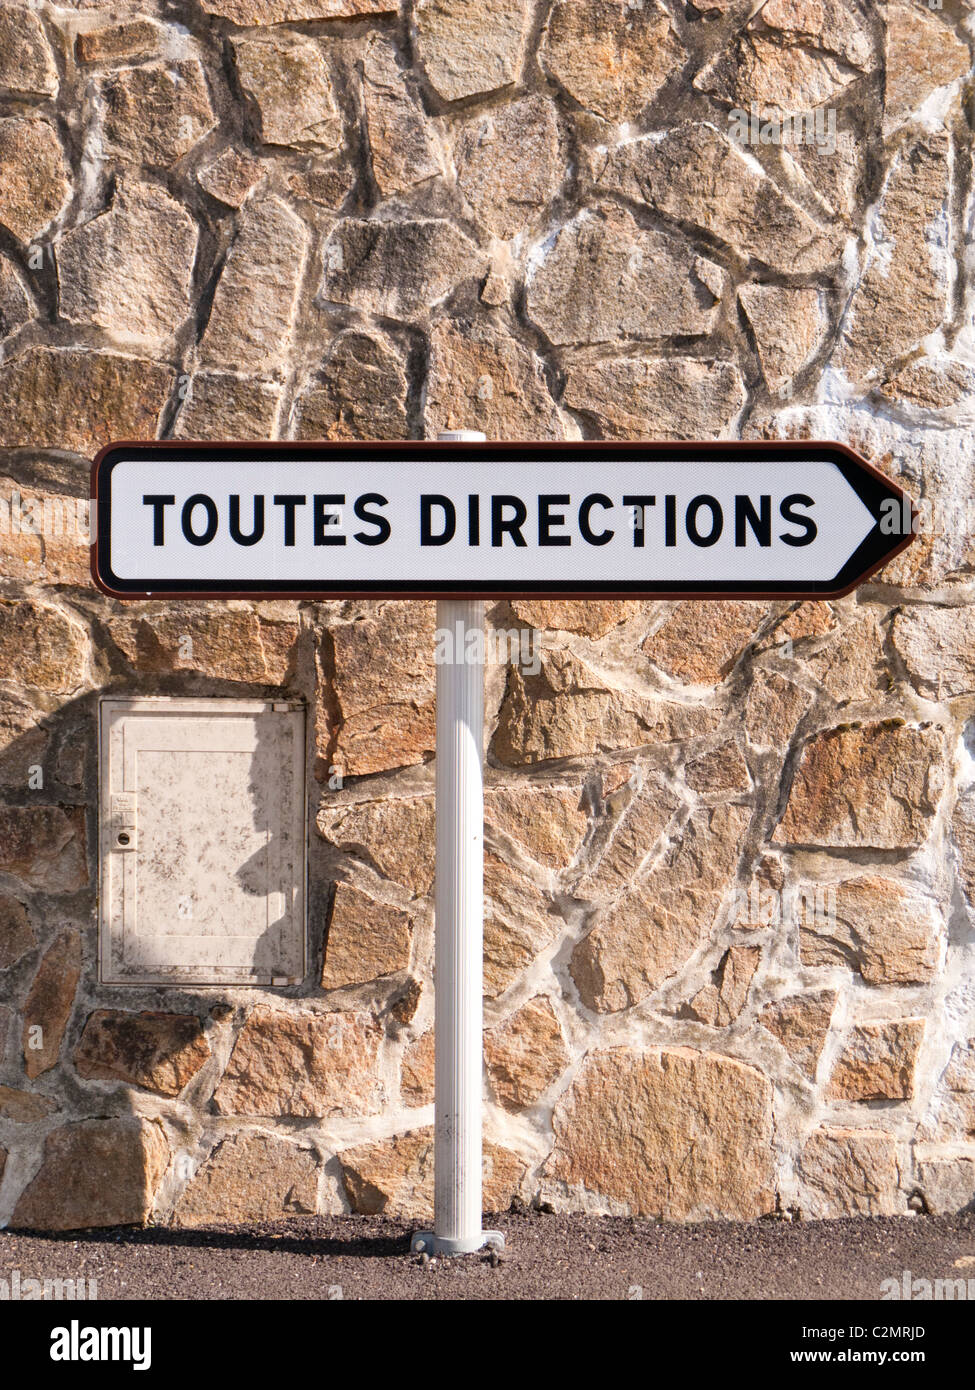 French road sign signpost Toutes Directions directional signs France Europe - Stock Image